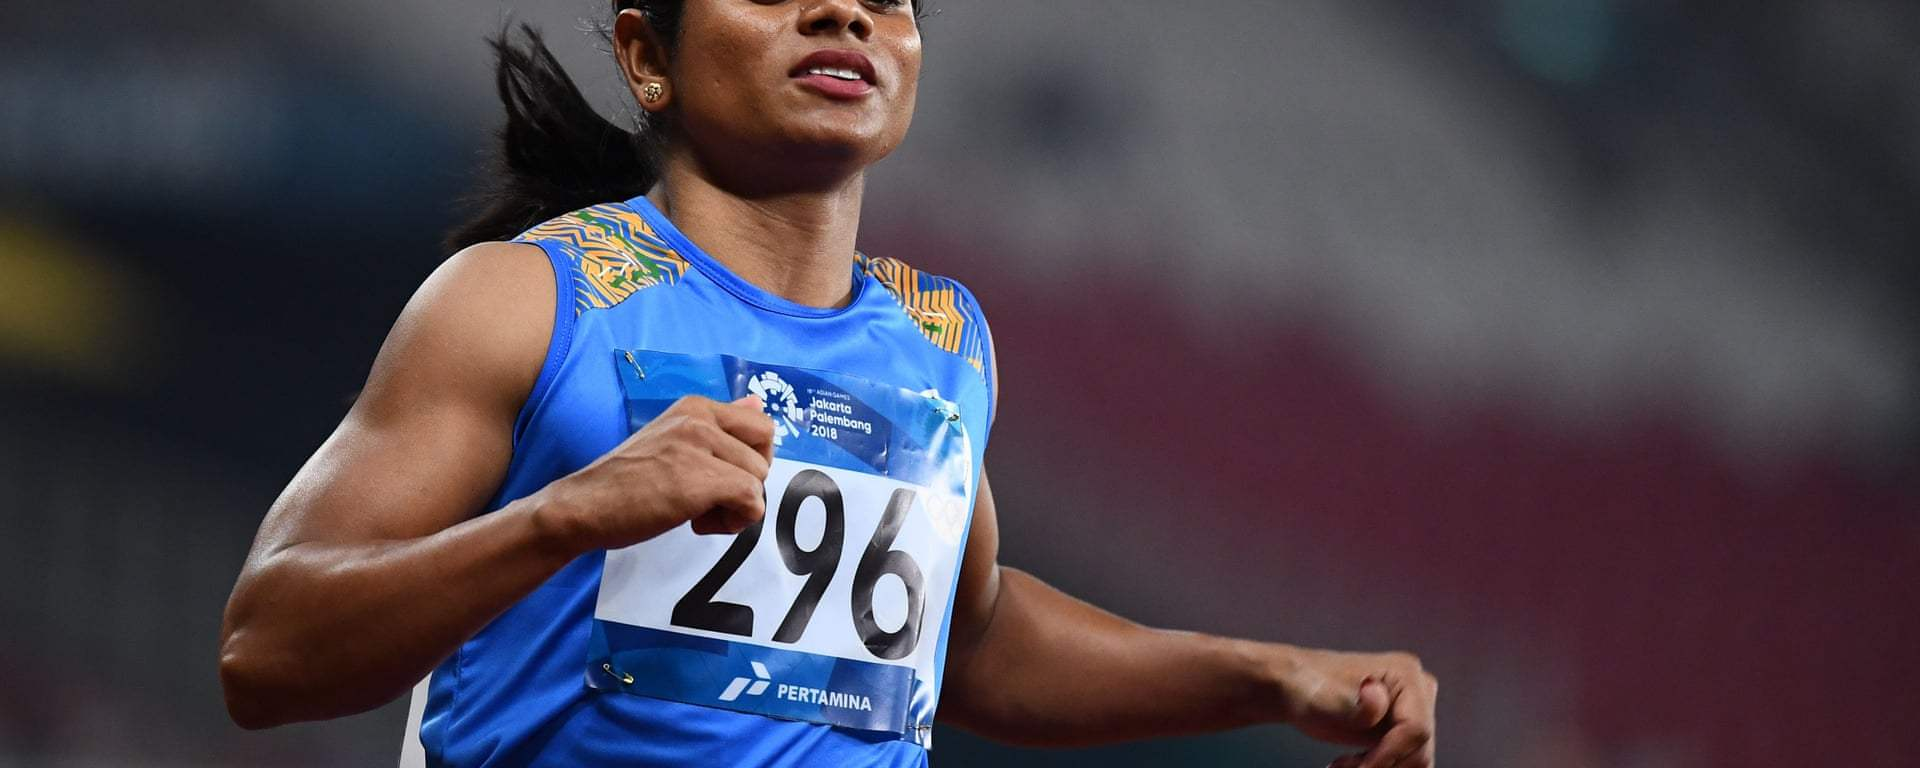 Dutee Chand Coming Out